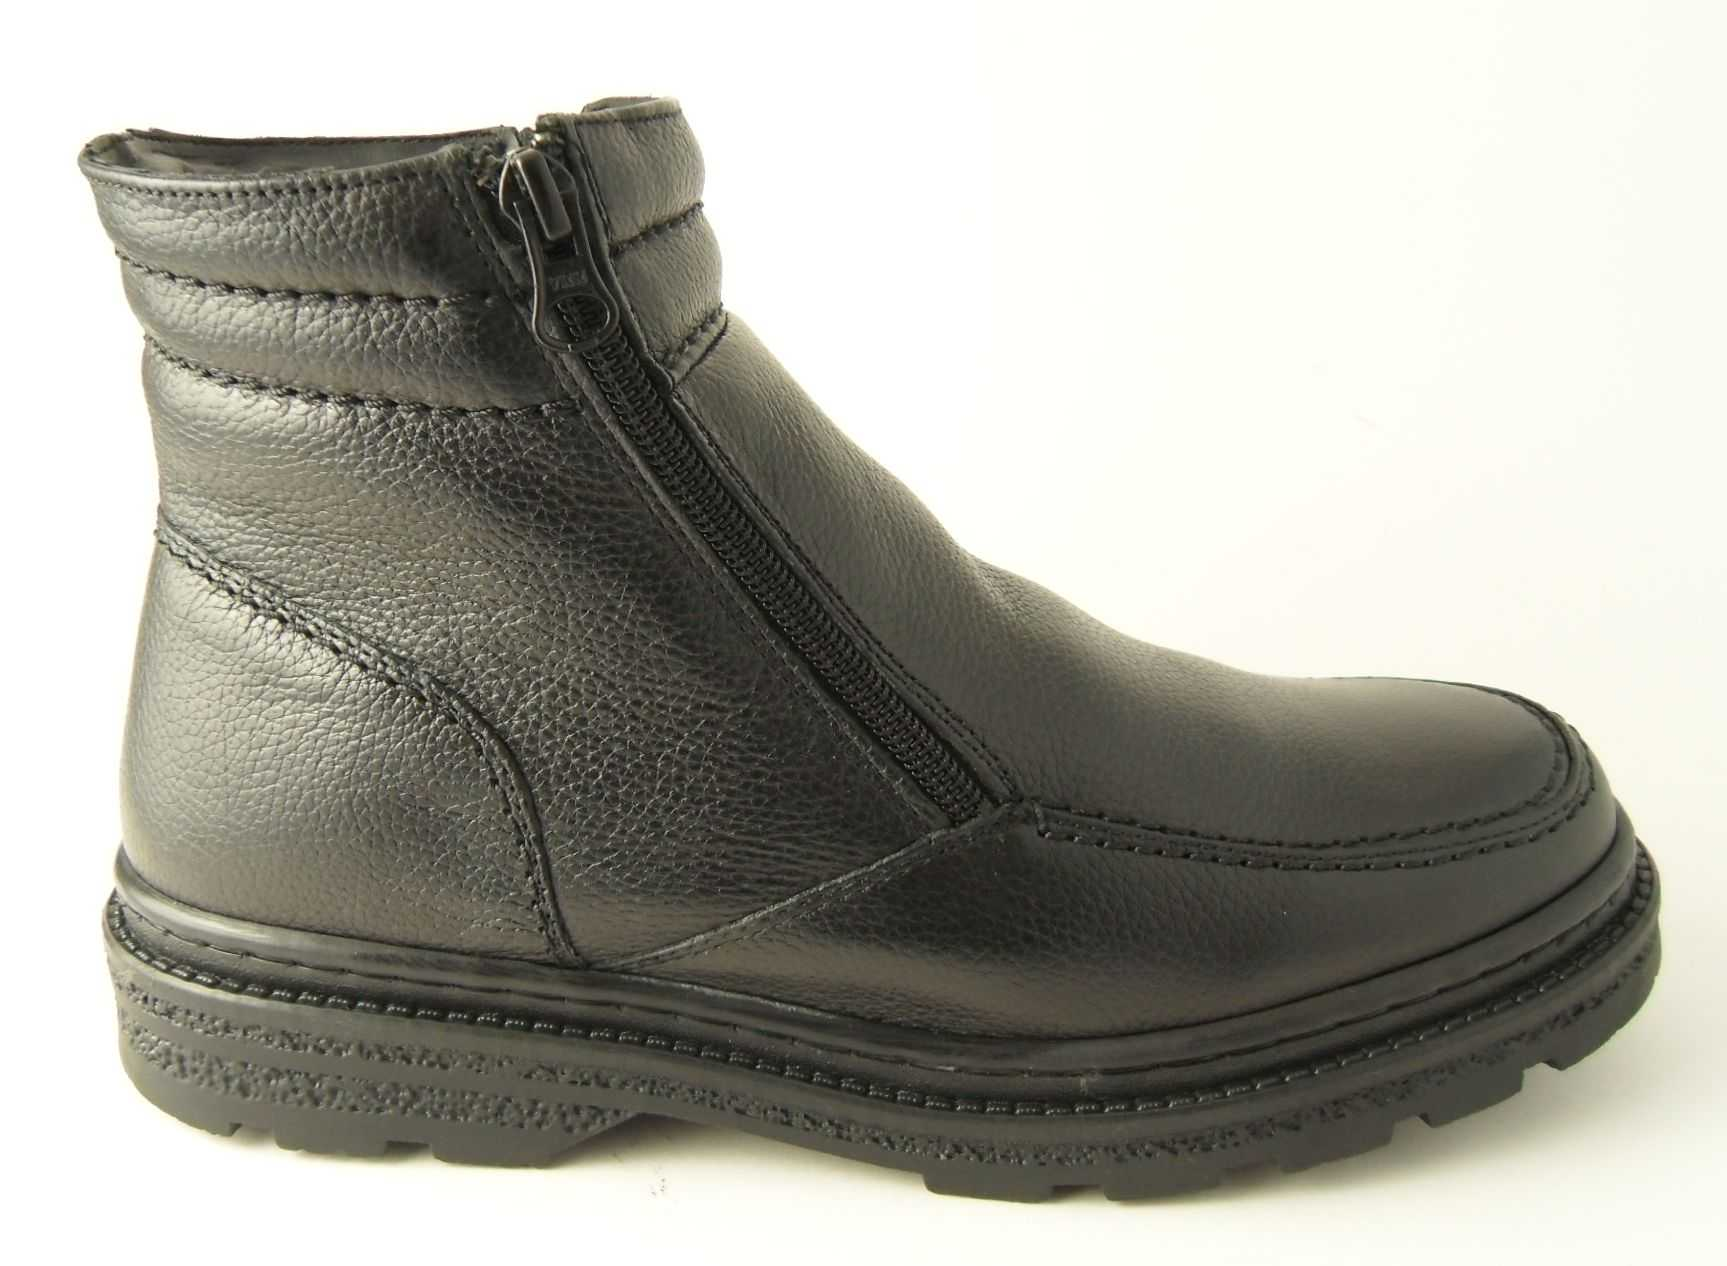 Mens Fleece Lined Boots Shoes